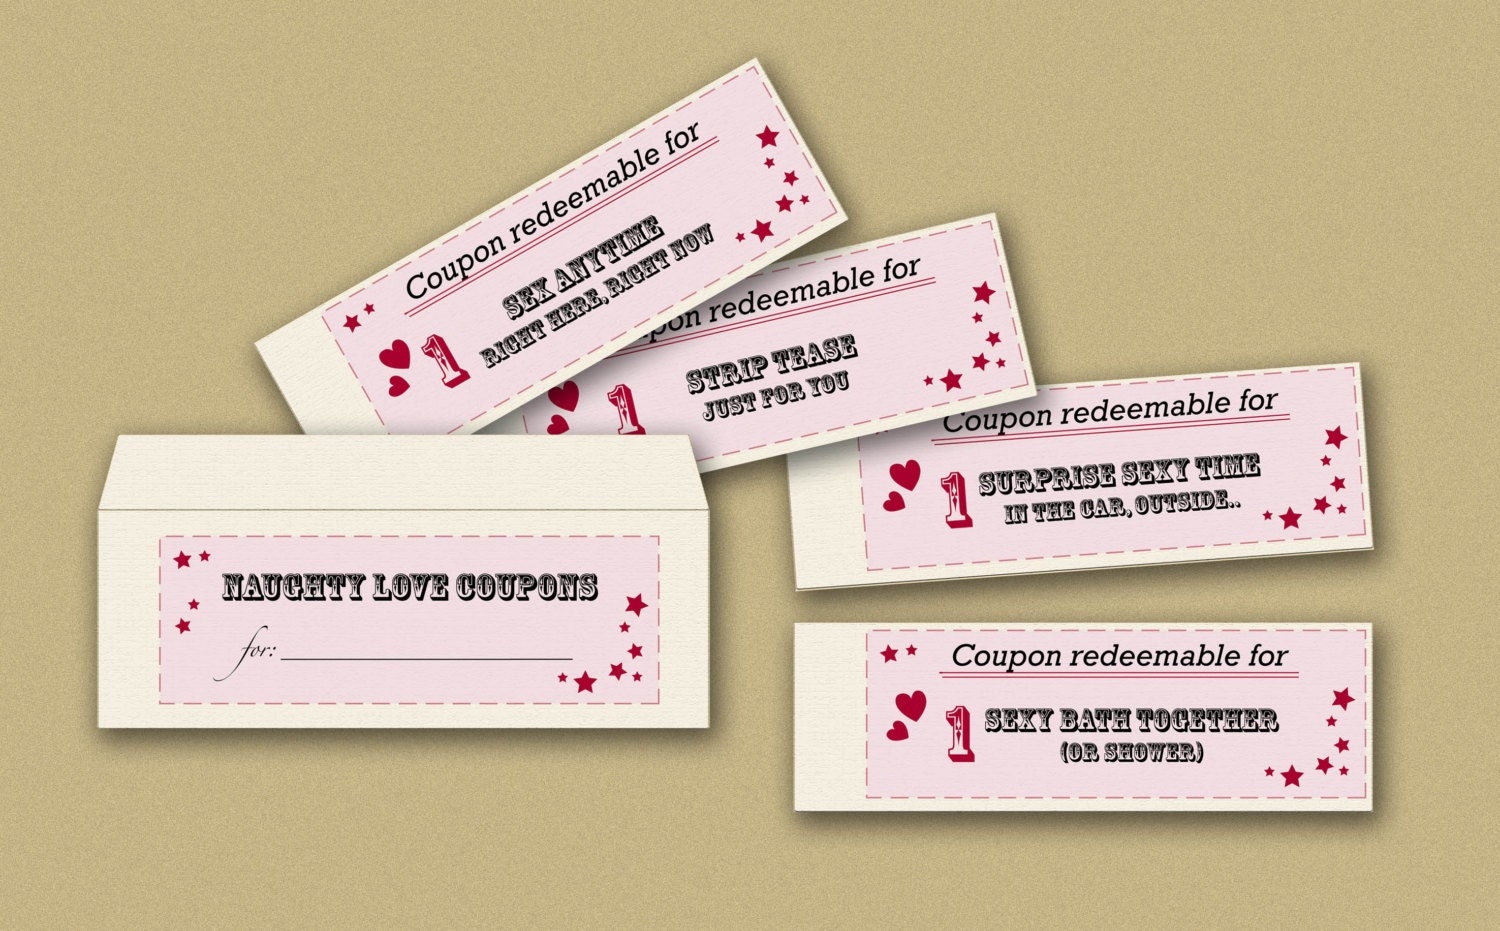 printable naughty love coupons book blank envelope 🔎zoom